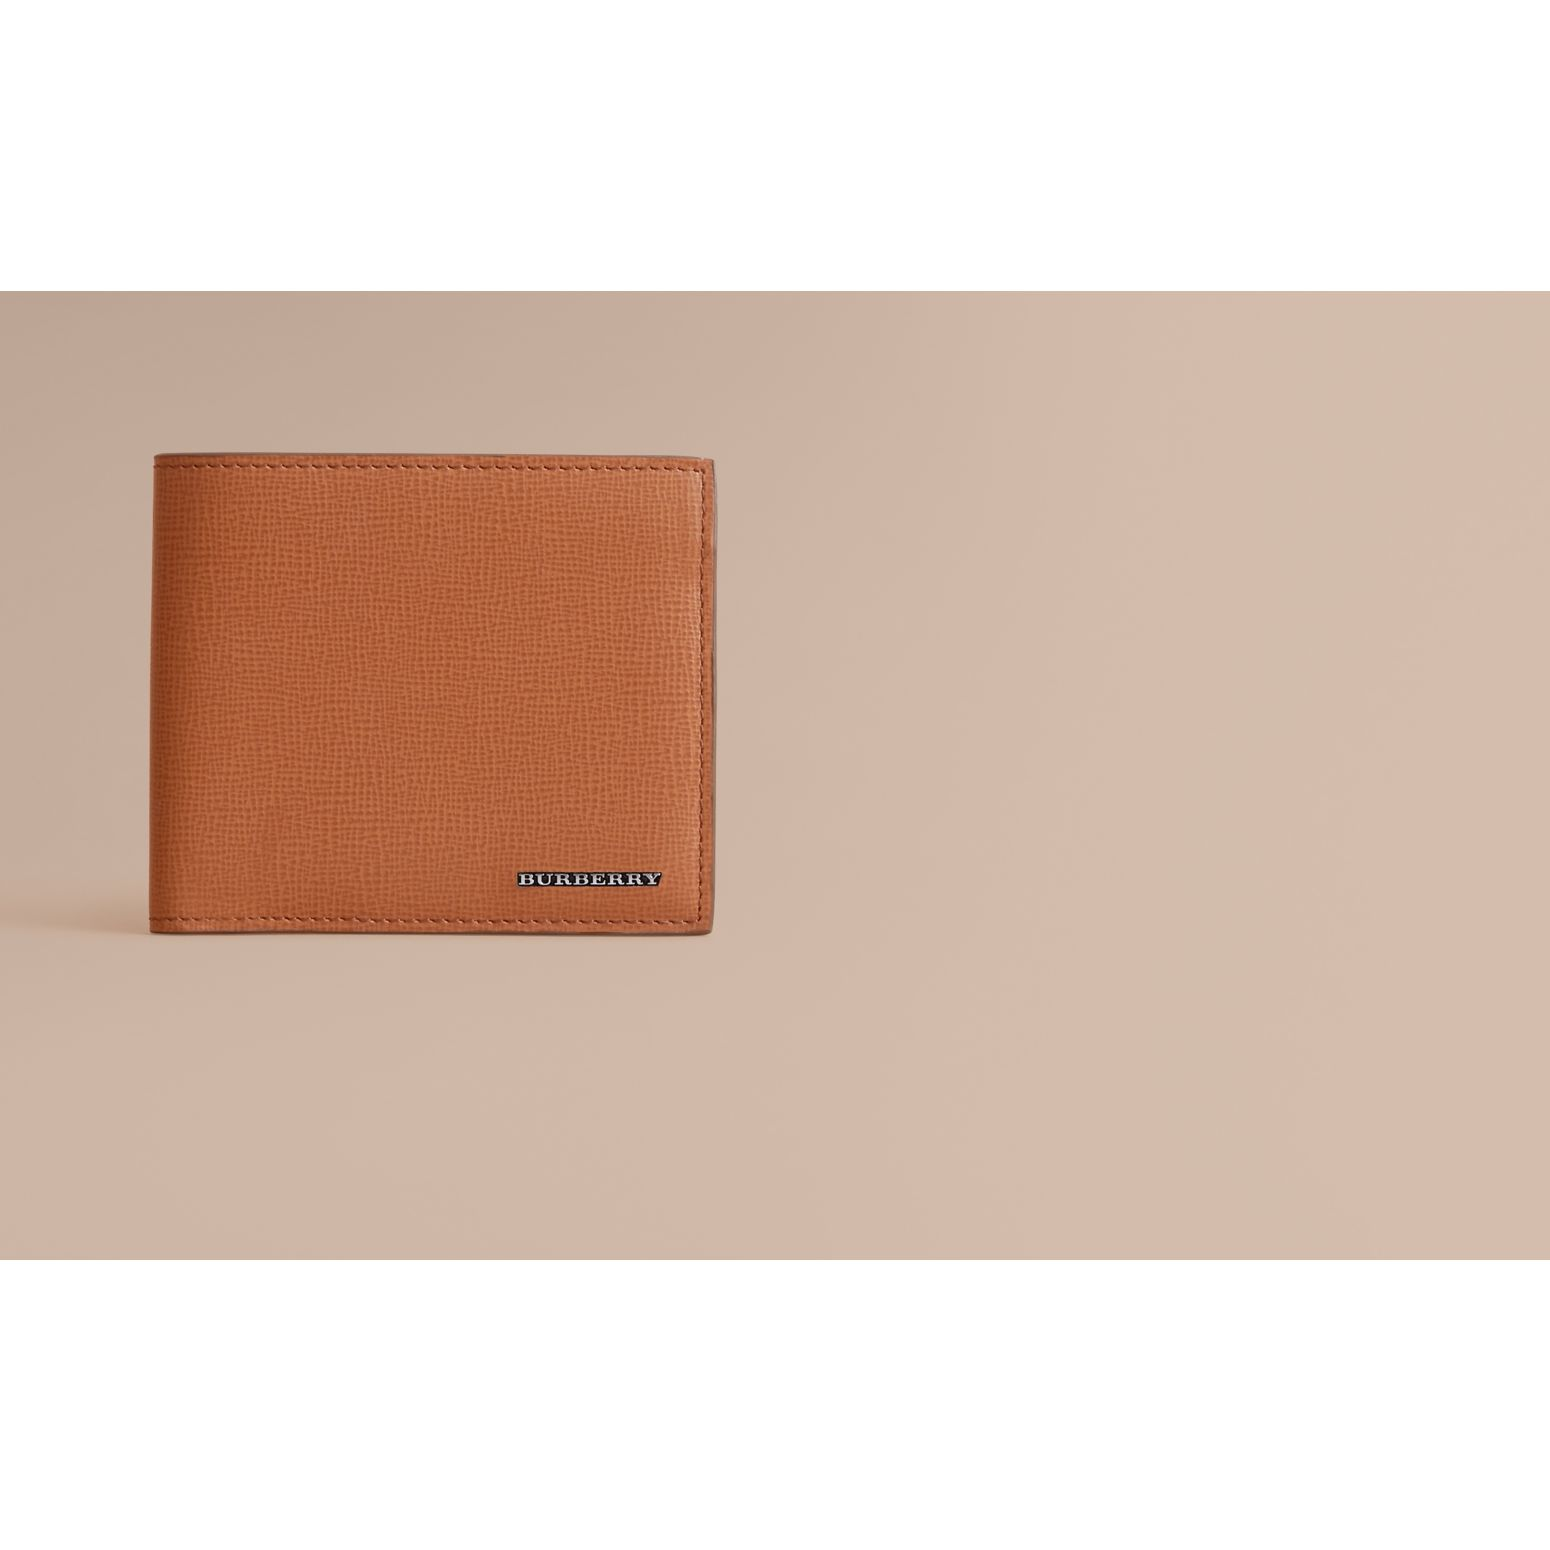 London Leather International Bifold Wallet in Tan | Burberry - gallery image 2